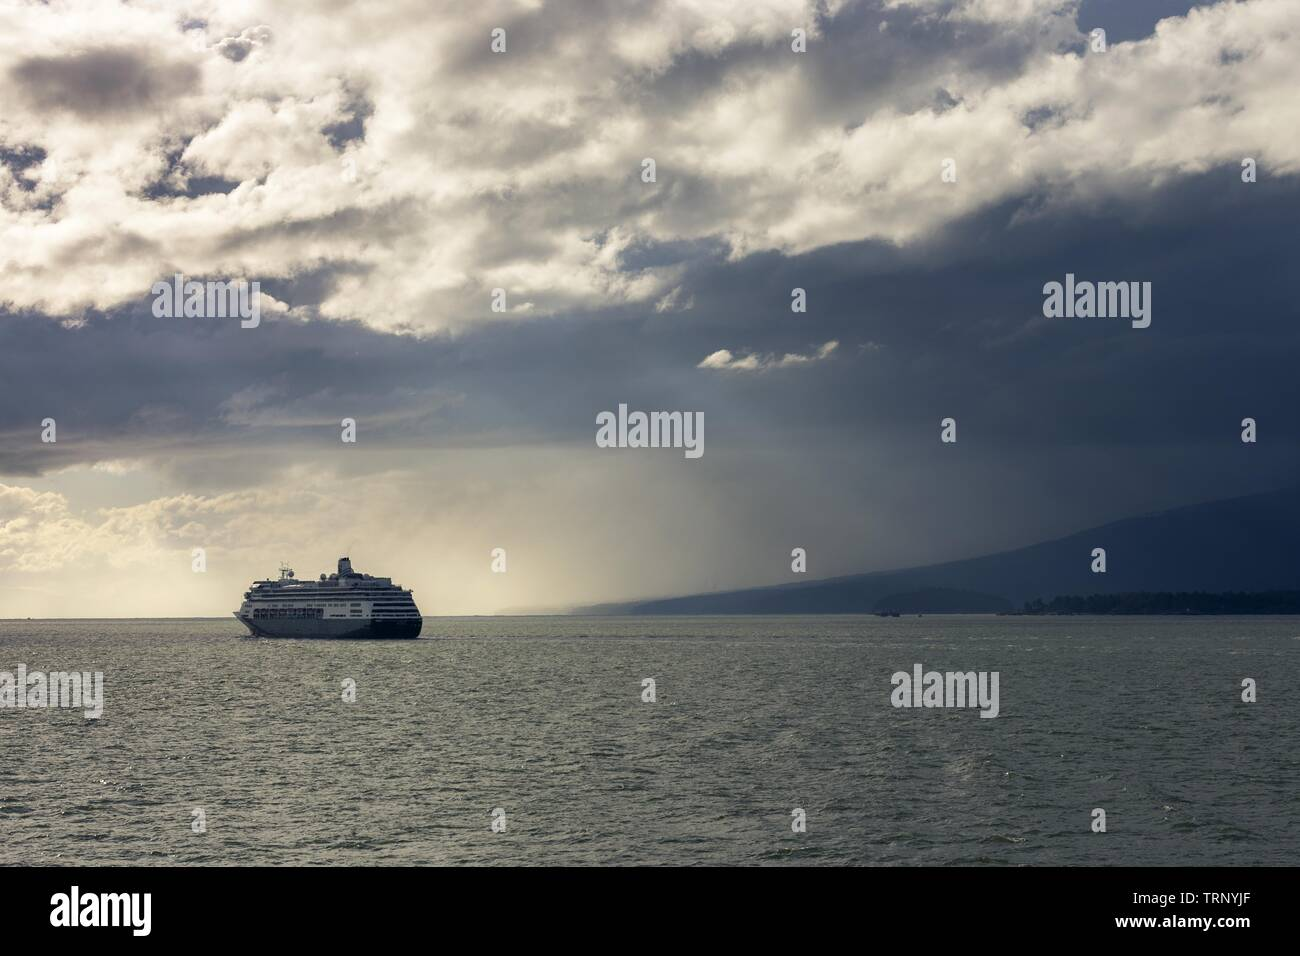 Large Cruise Liner Ocean Ship crossing Burrard Strait. Dramatic Stormy Sky on the Horizon off the Coast of Vancouver Island, British Columbia Canada Stock Photo